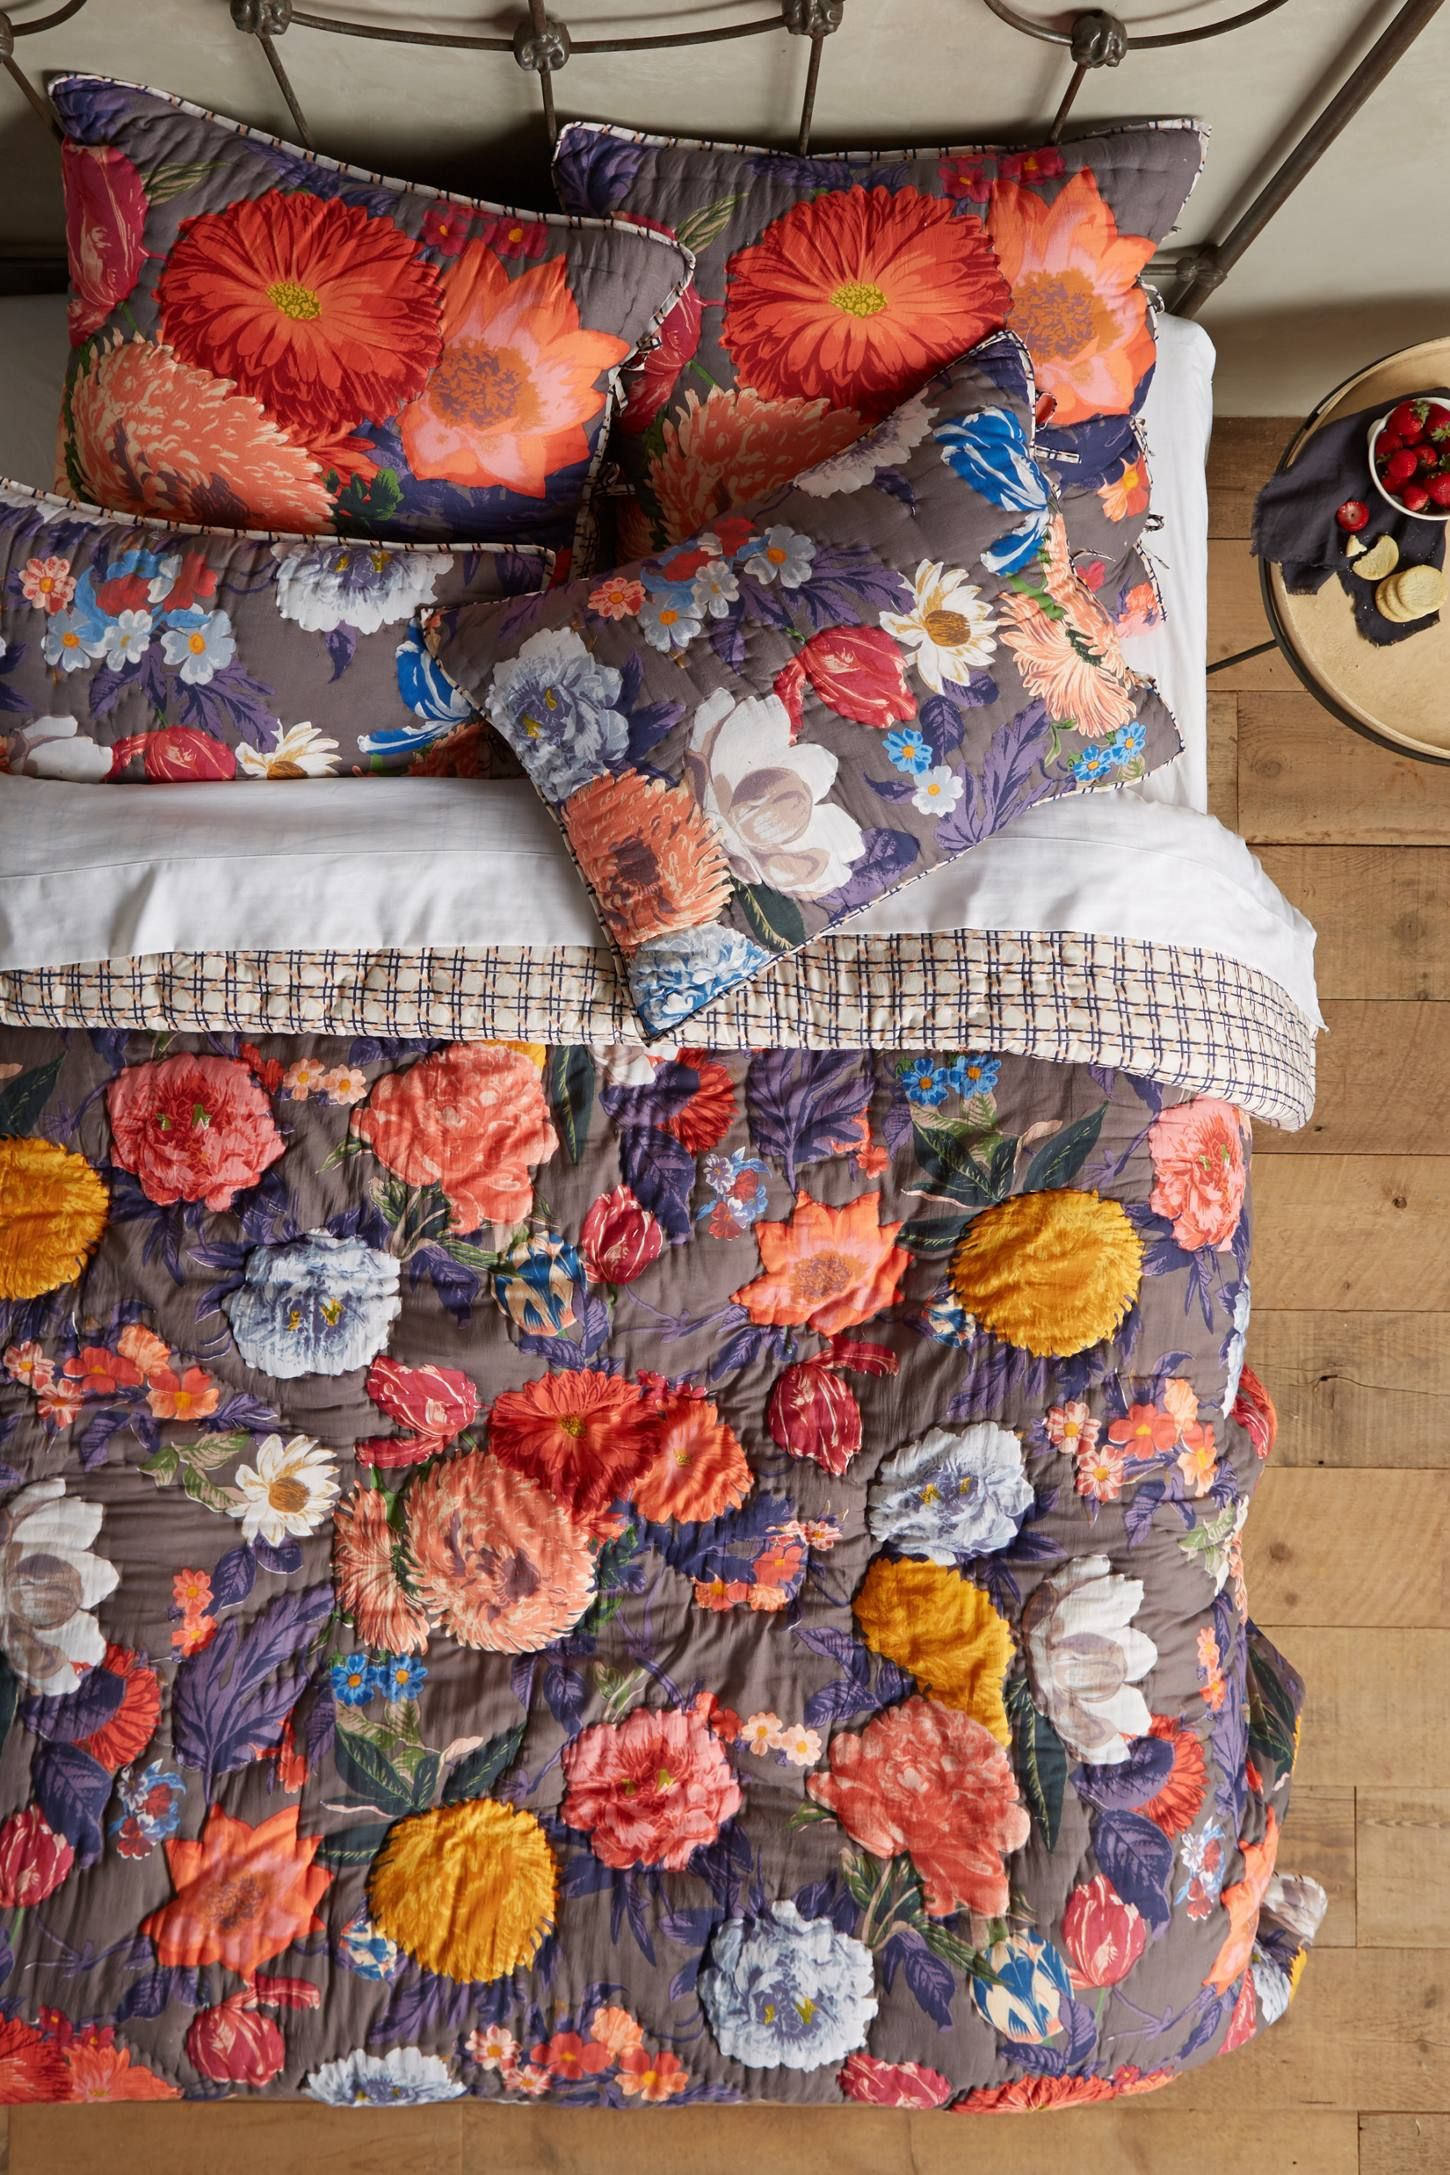 Vienna Down Sham Insert | Anthropologie, Apartments and Dream rooms : tahla quilt anthropologie - Adamdwight.com